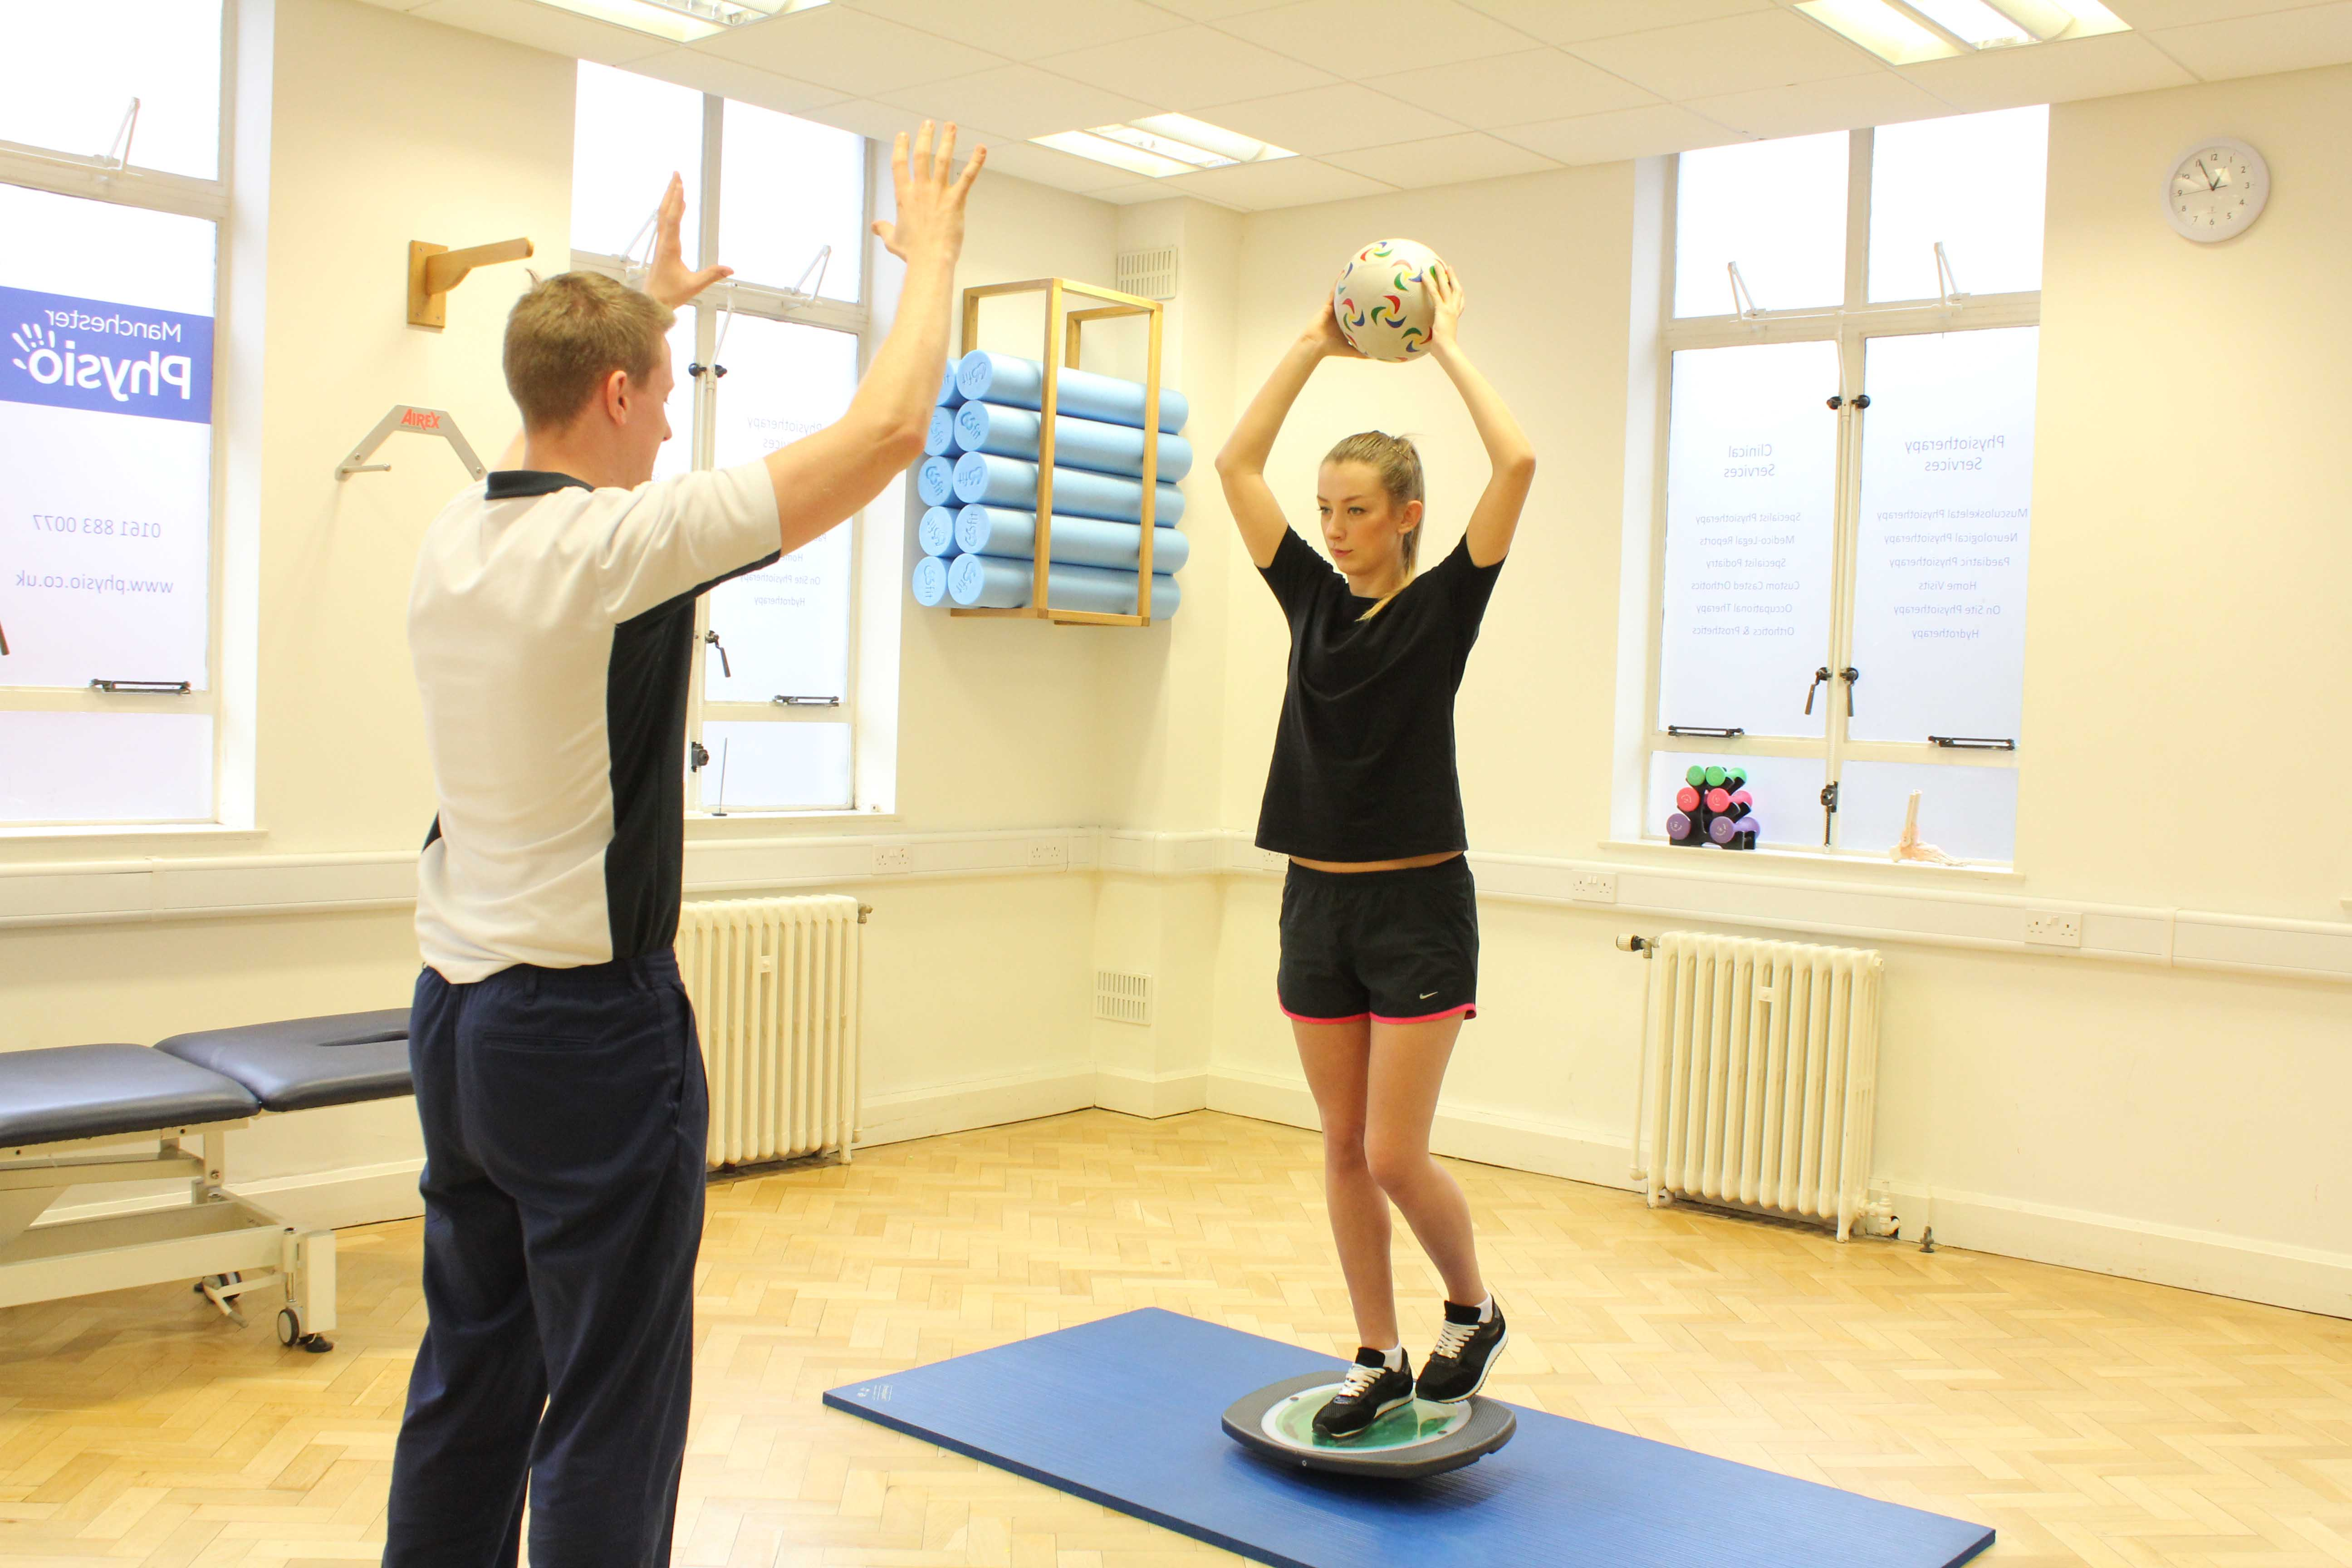 Balance exercises supervised by experienced musculoskeletal Physiotherapist